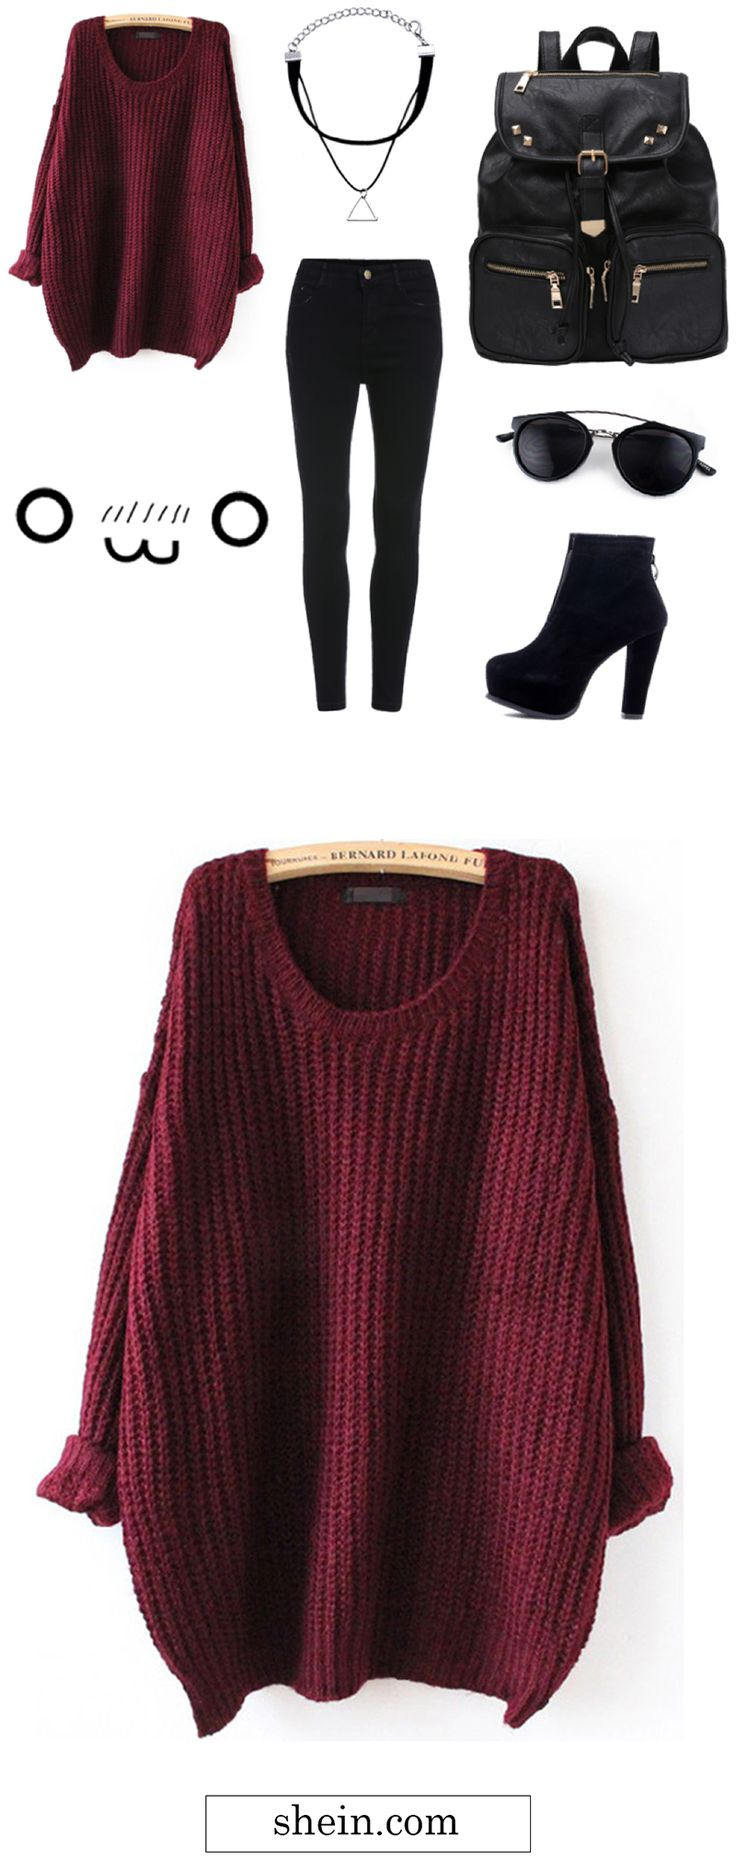 Red Batwing Loose Knit Sweater. Warm simple lazy style for winter.